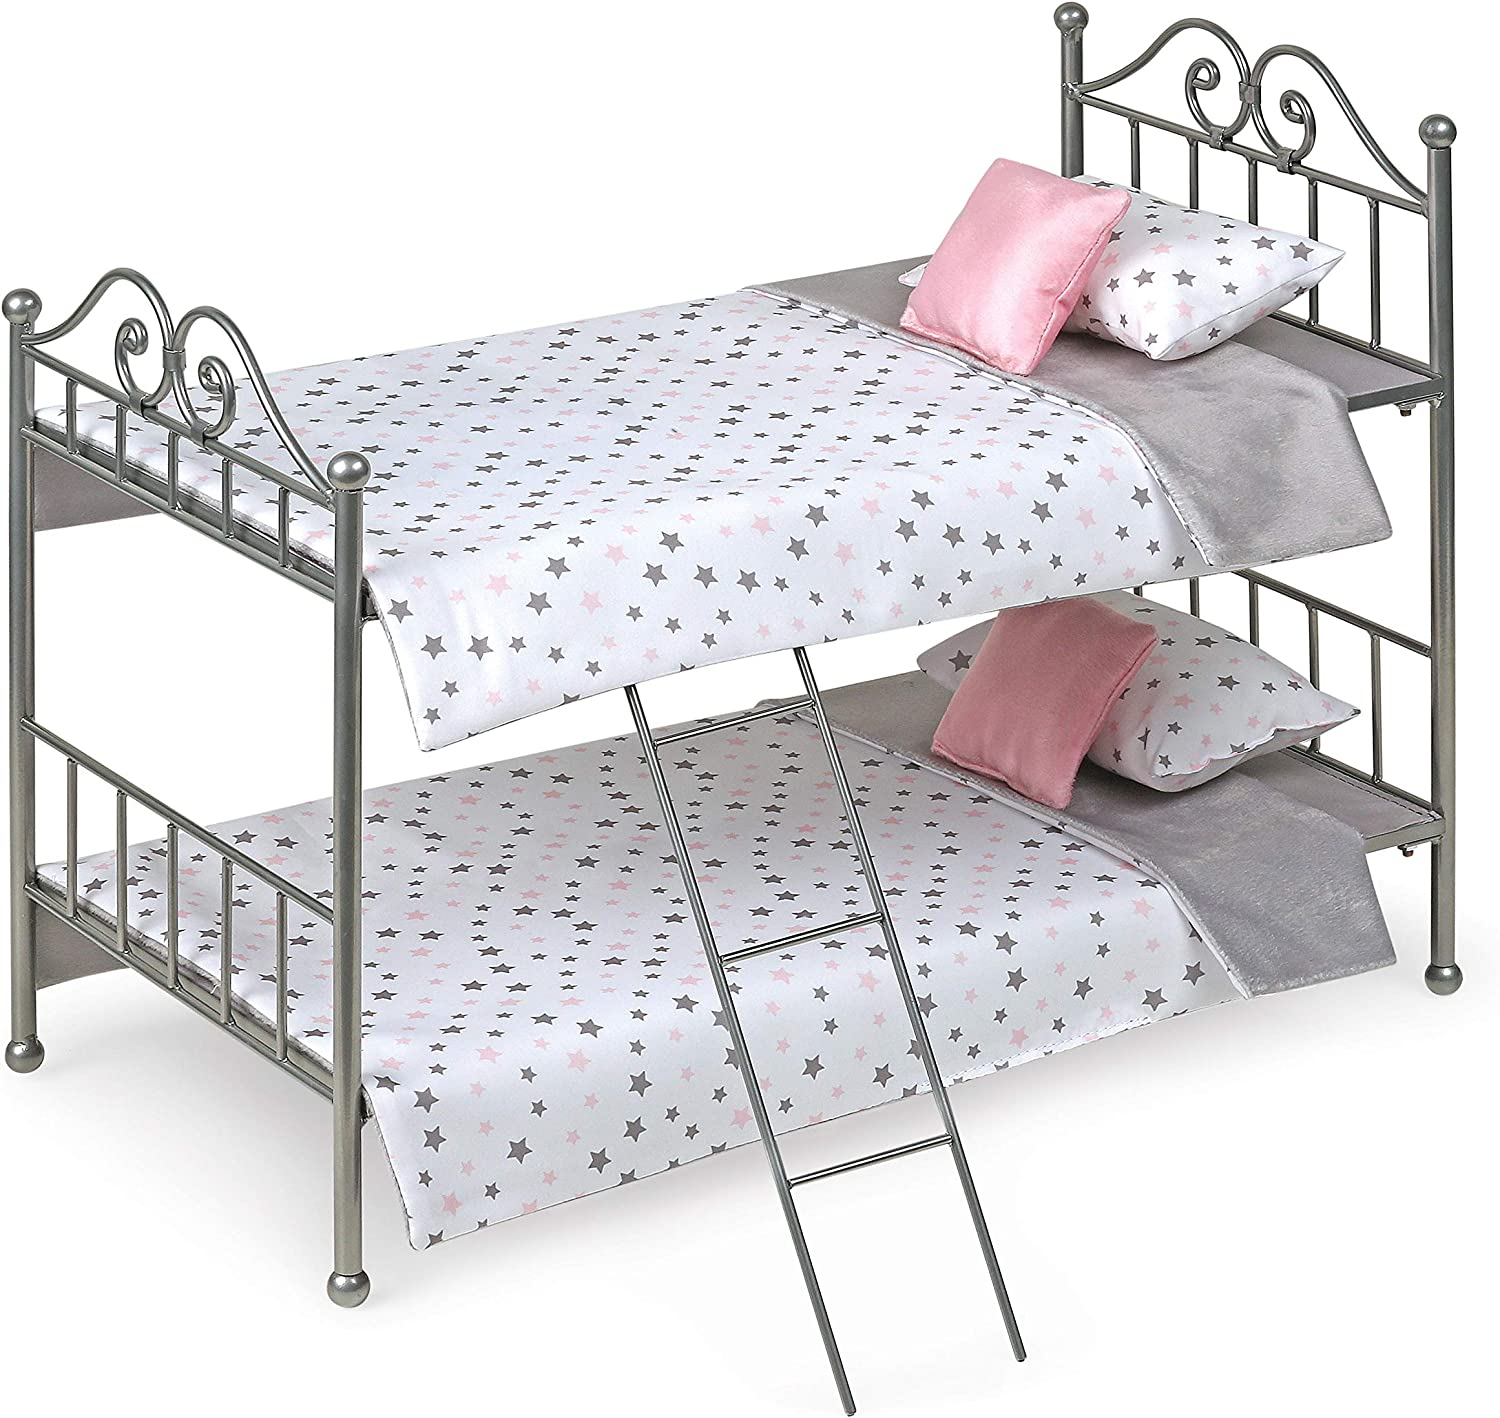 Scrollwork Metal Doll Bunk Bed with Ladder and Bedding - fits American Girl Dolls